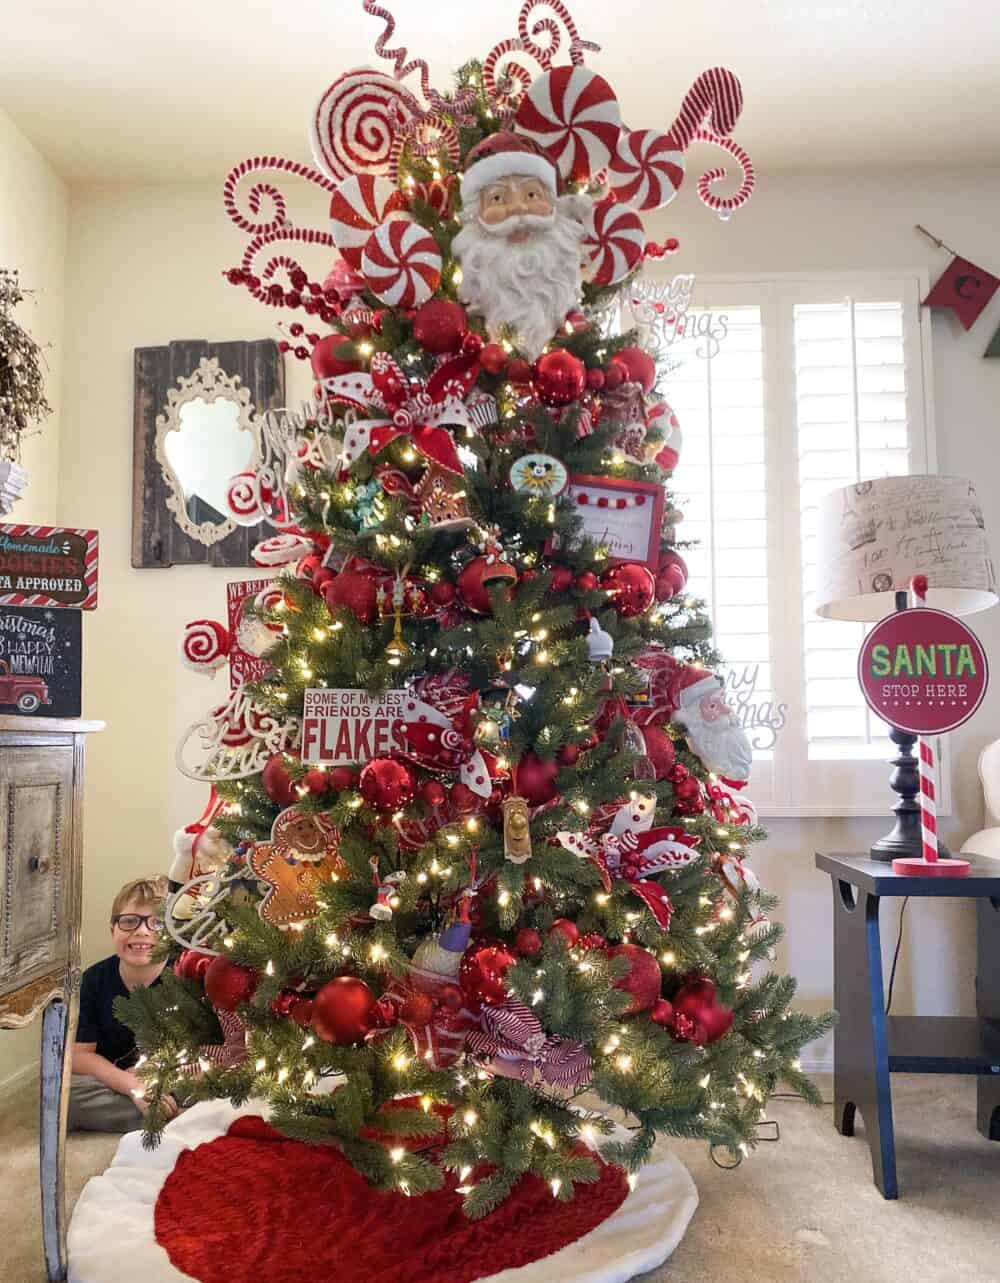 Christmas Tree Decorated Images - Free Download